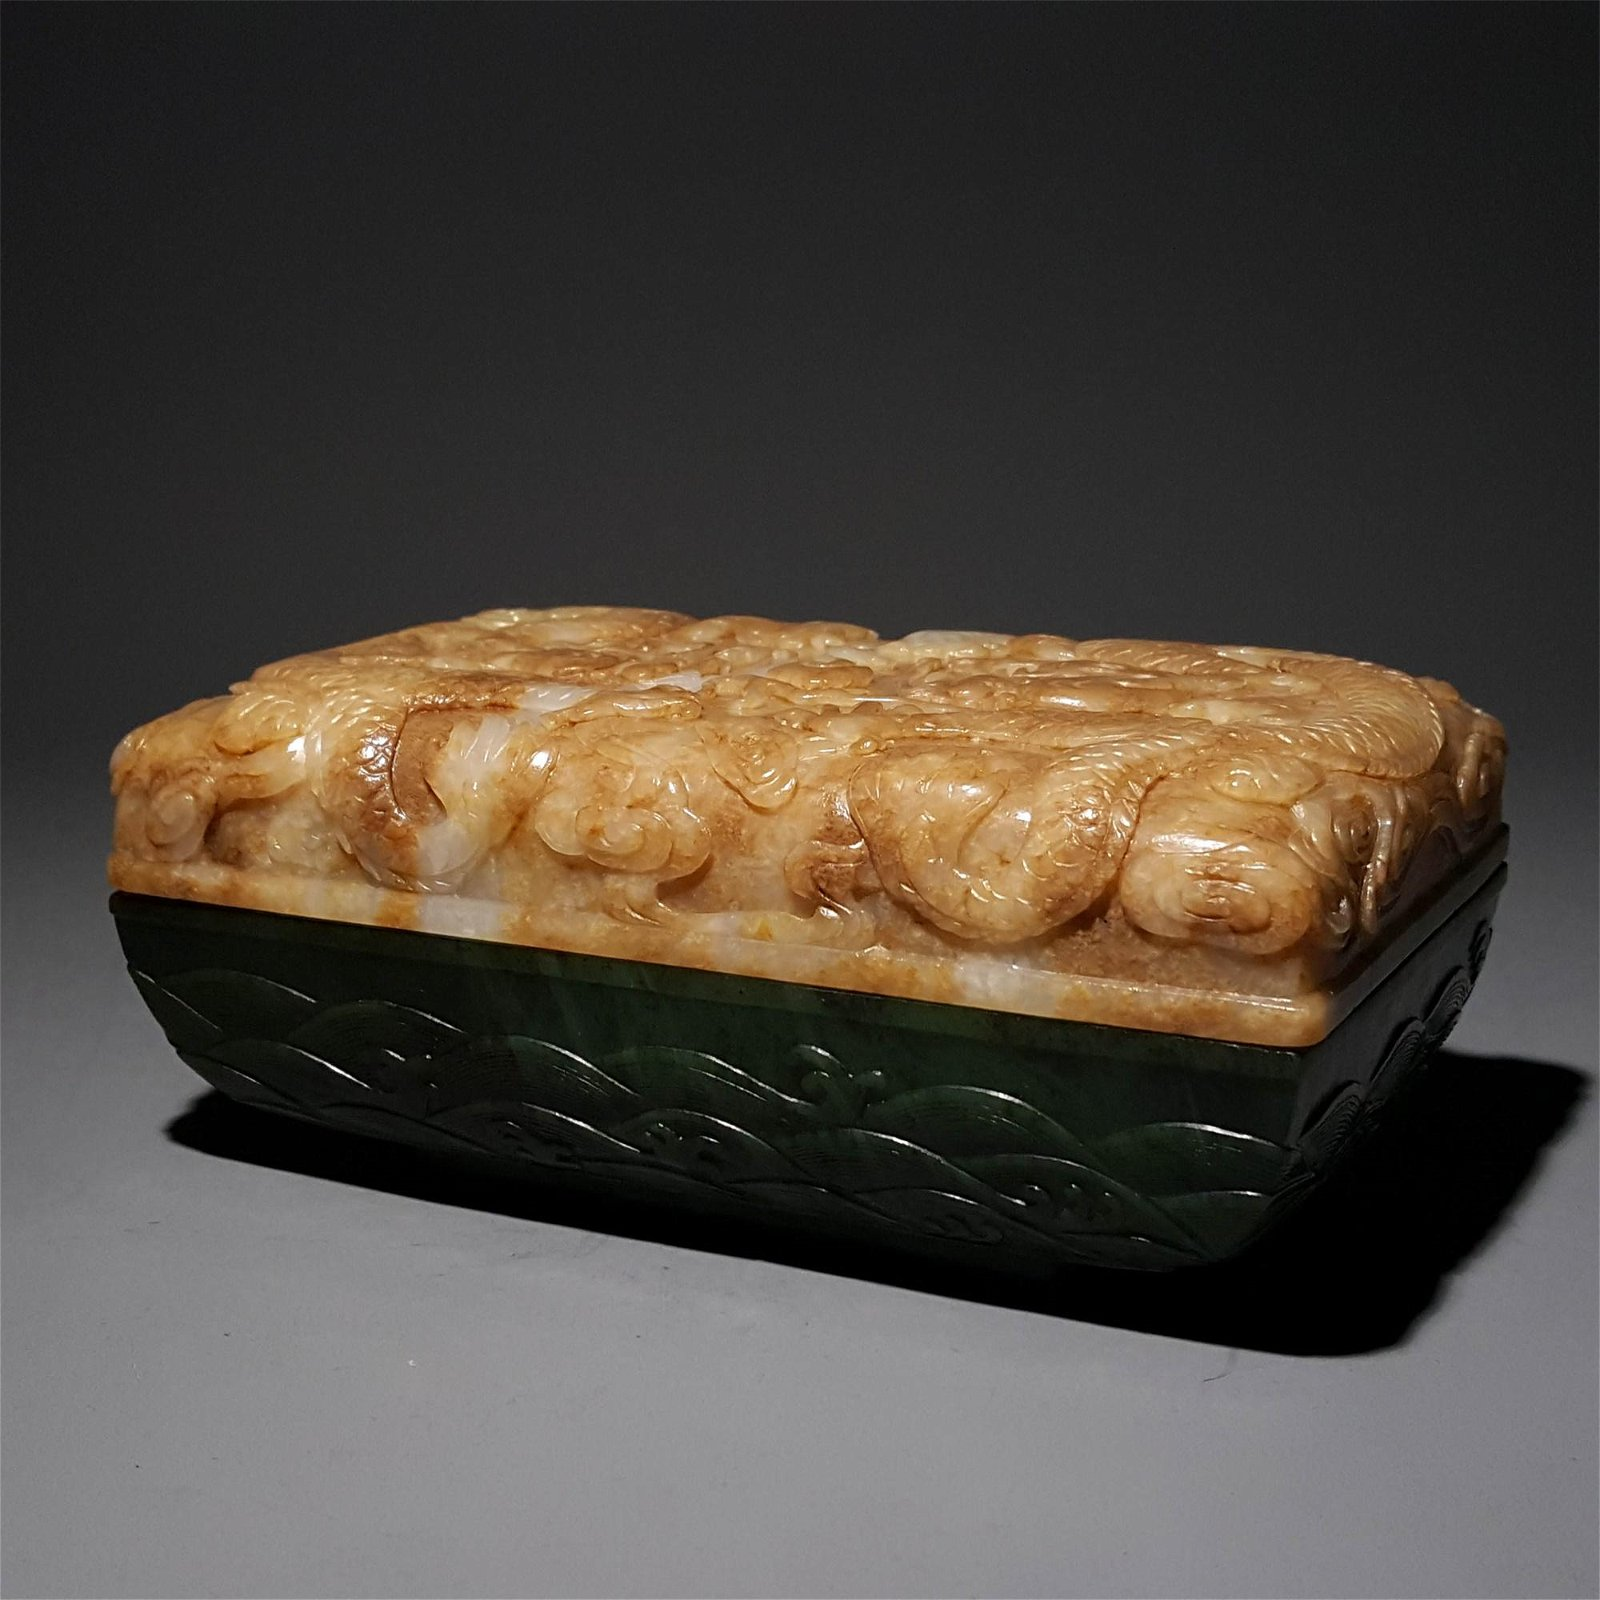 A QING DYNASTY CARVED WHITE JADE AND GRENN JADE BOX